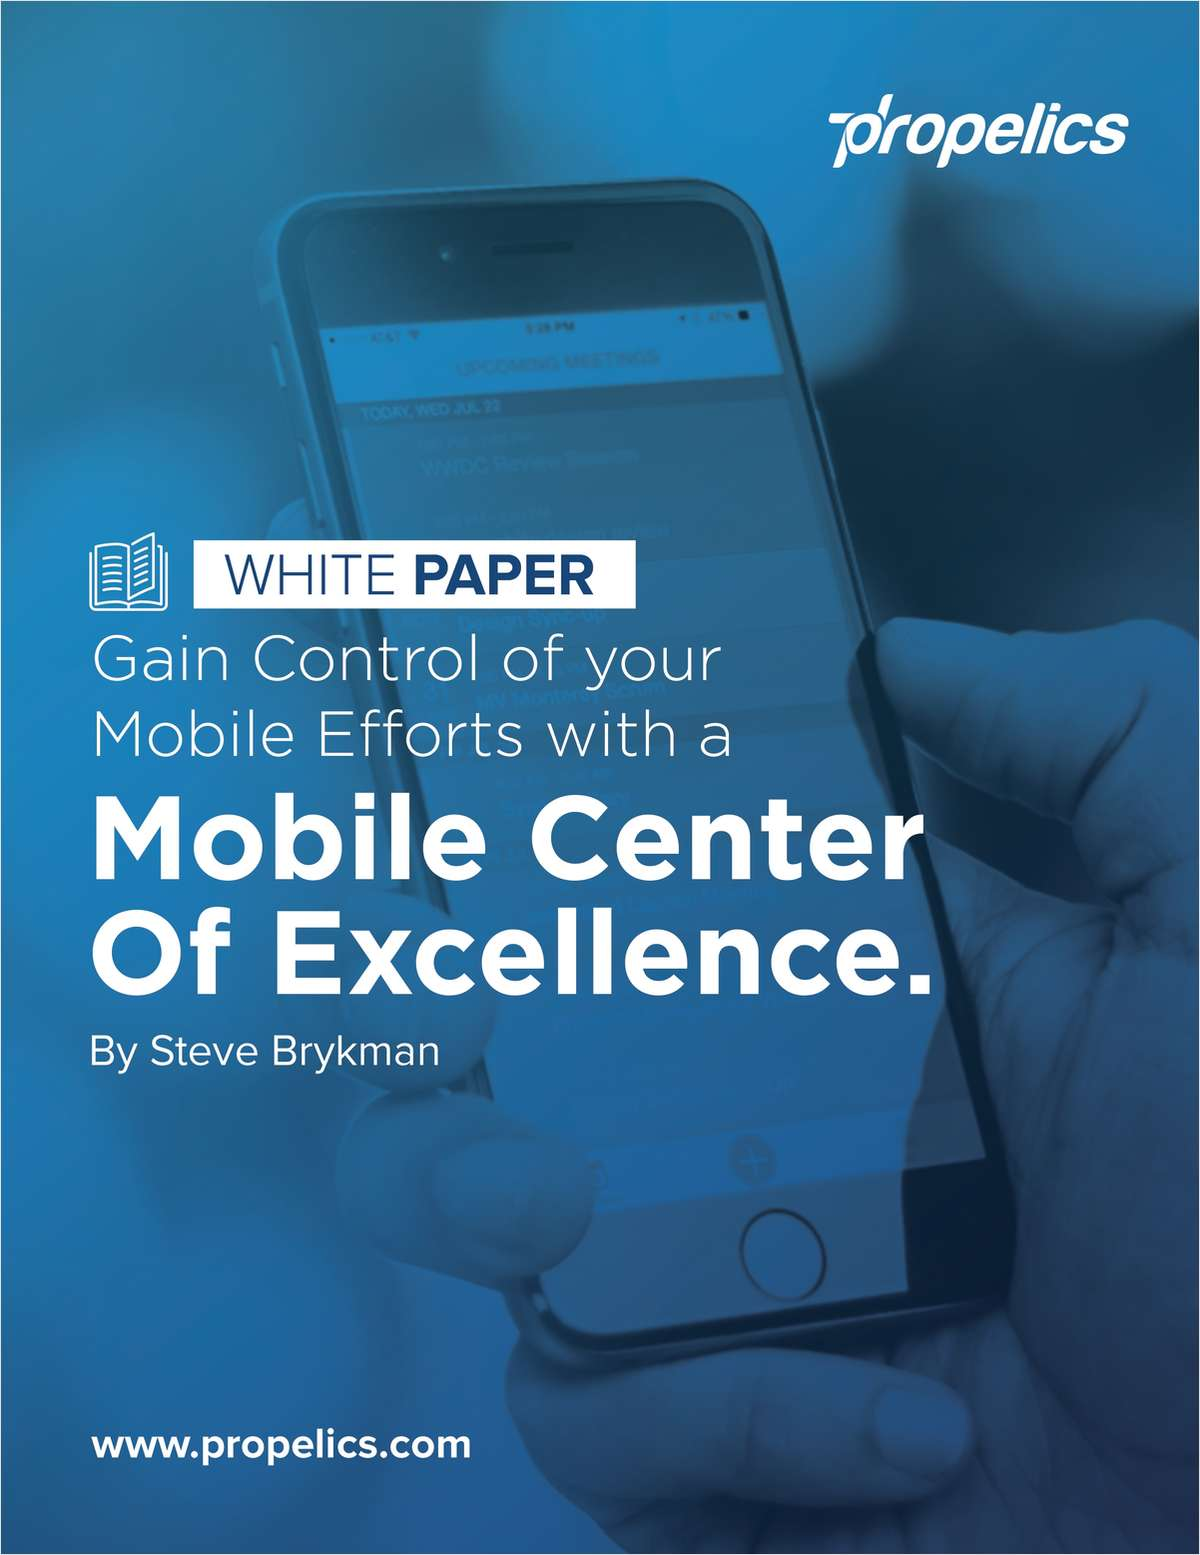 White Paper - Gain Control of Your Mobile Efforts With a Mobile Center of Excellence